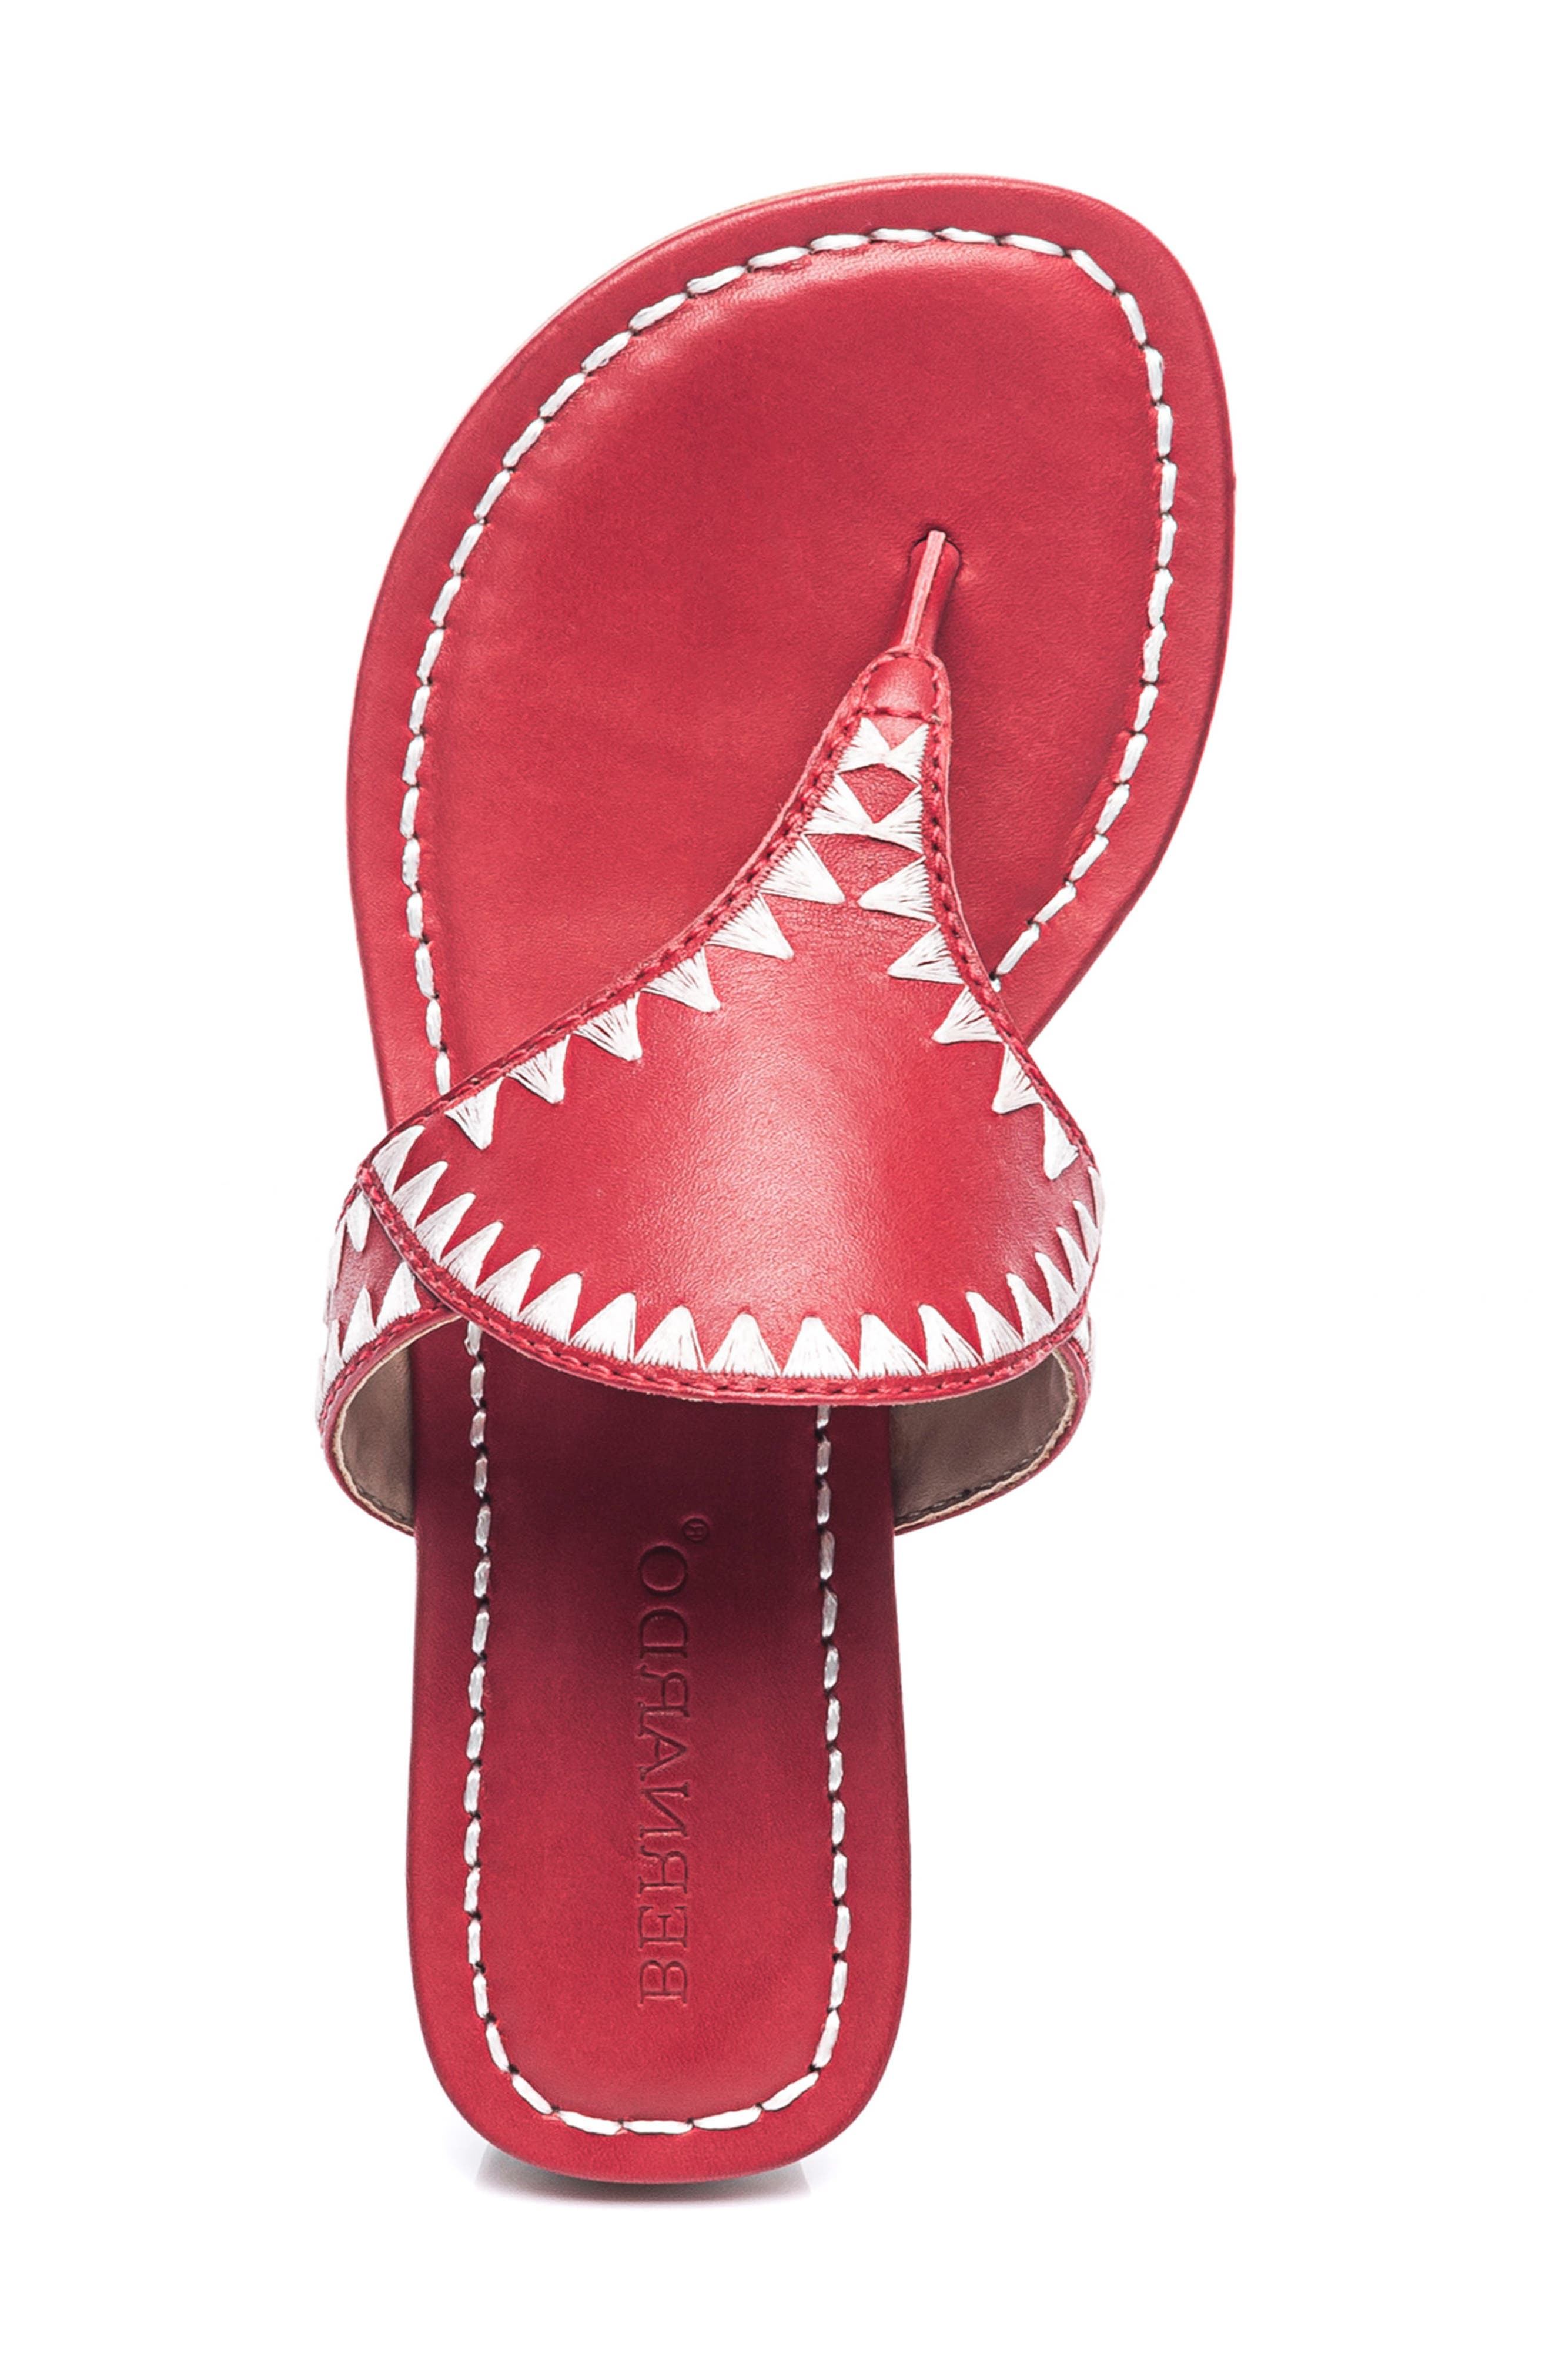 Bernardo Gabi Embroidered Sandal,                             Alternate thumbnail 5, color,                             Red Leather